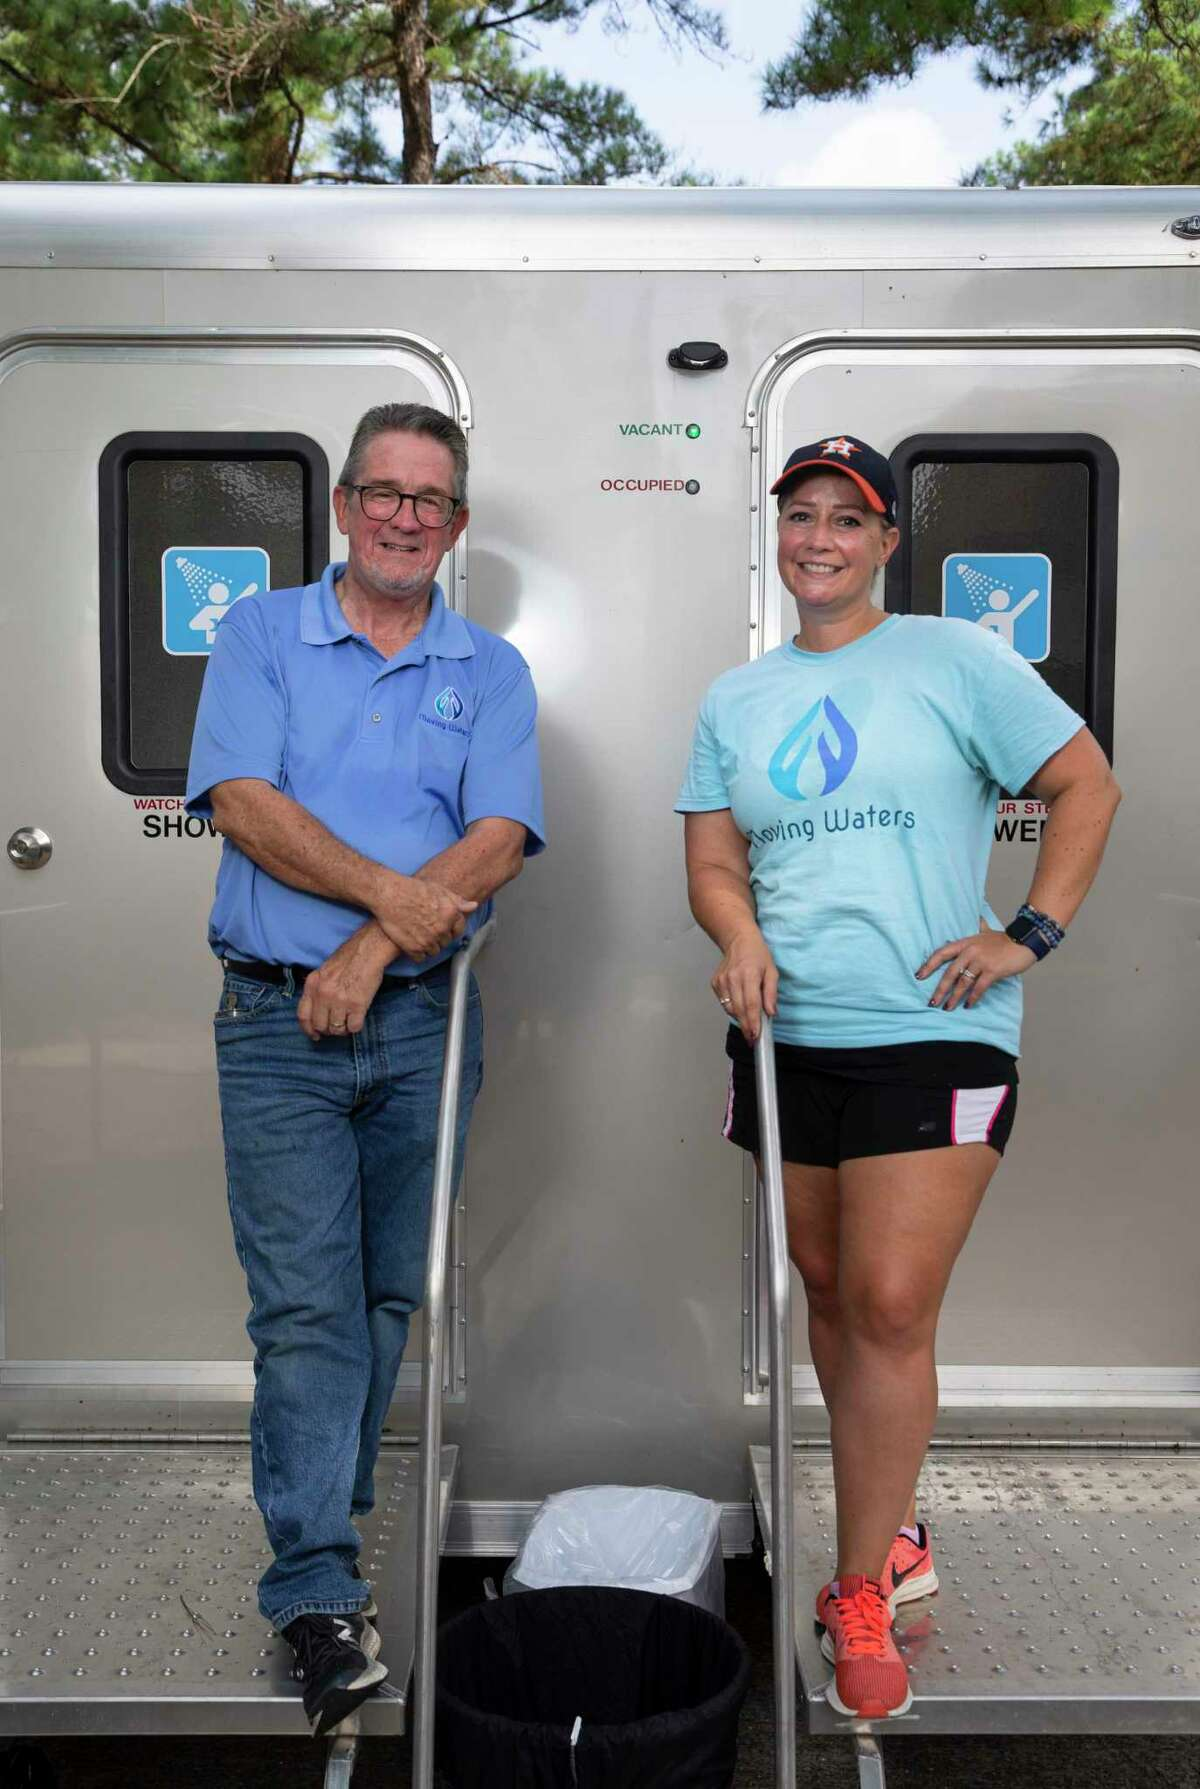 Jimmy Patterson, 62, and daughter Jennifer Park, 35, pose for a photograph with a Moving Waters of Houston's mobile shower trailer Saturday, Sept. 4, 2021, at Tomball United Methodist Church in Tomball. Park is the founder and executive director of Moving Waters of Houston while Patterson is a board member. The organization provides mobile showers for the homeless in the Houston area.